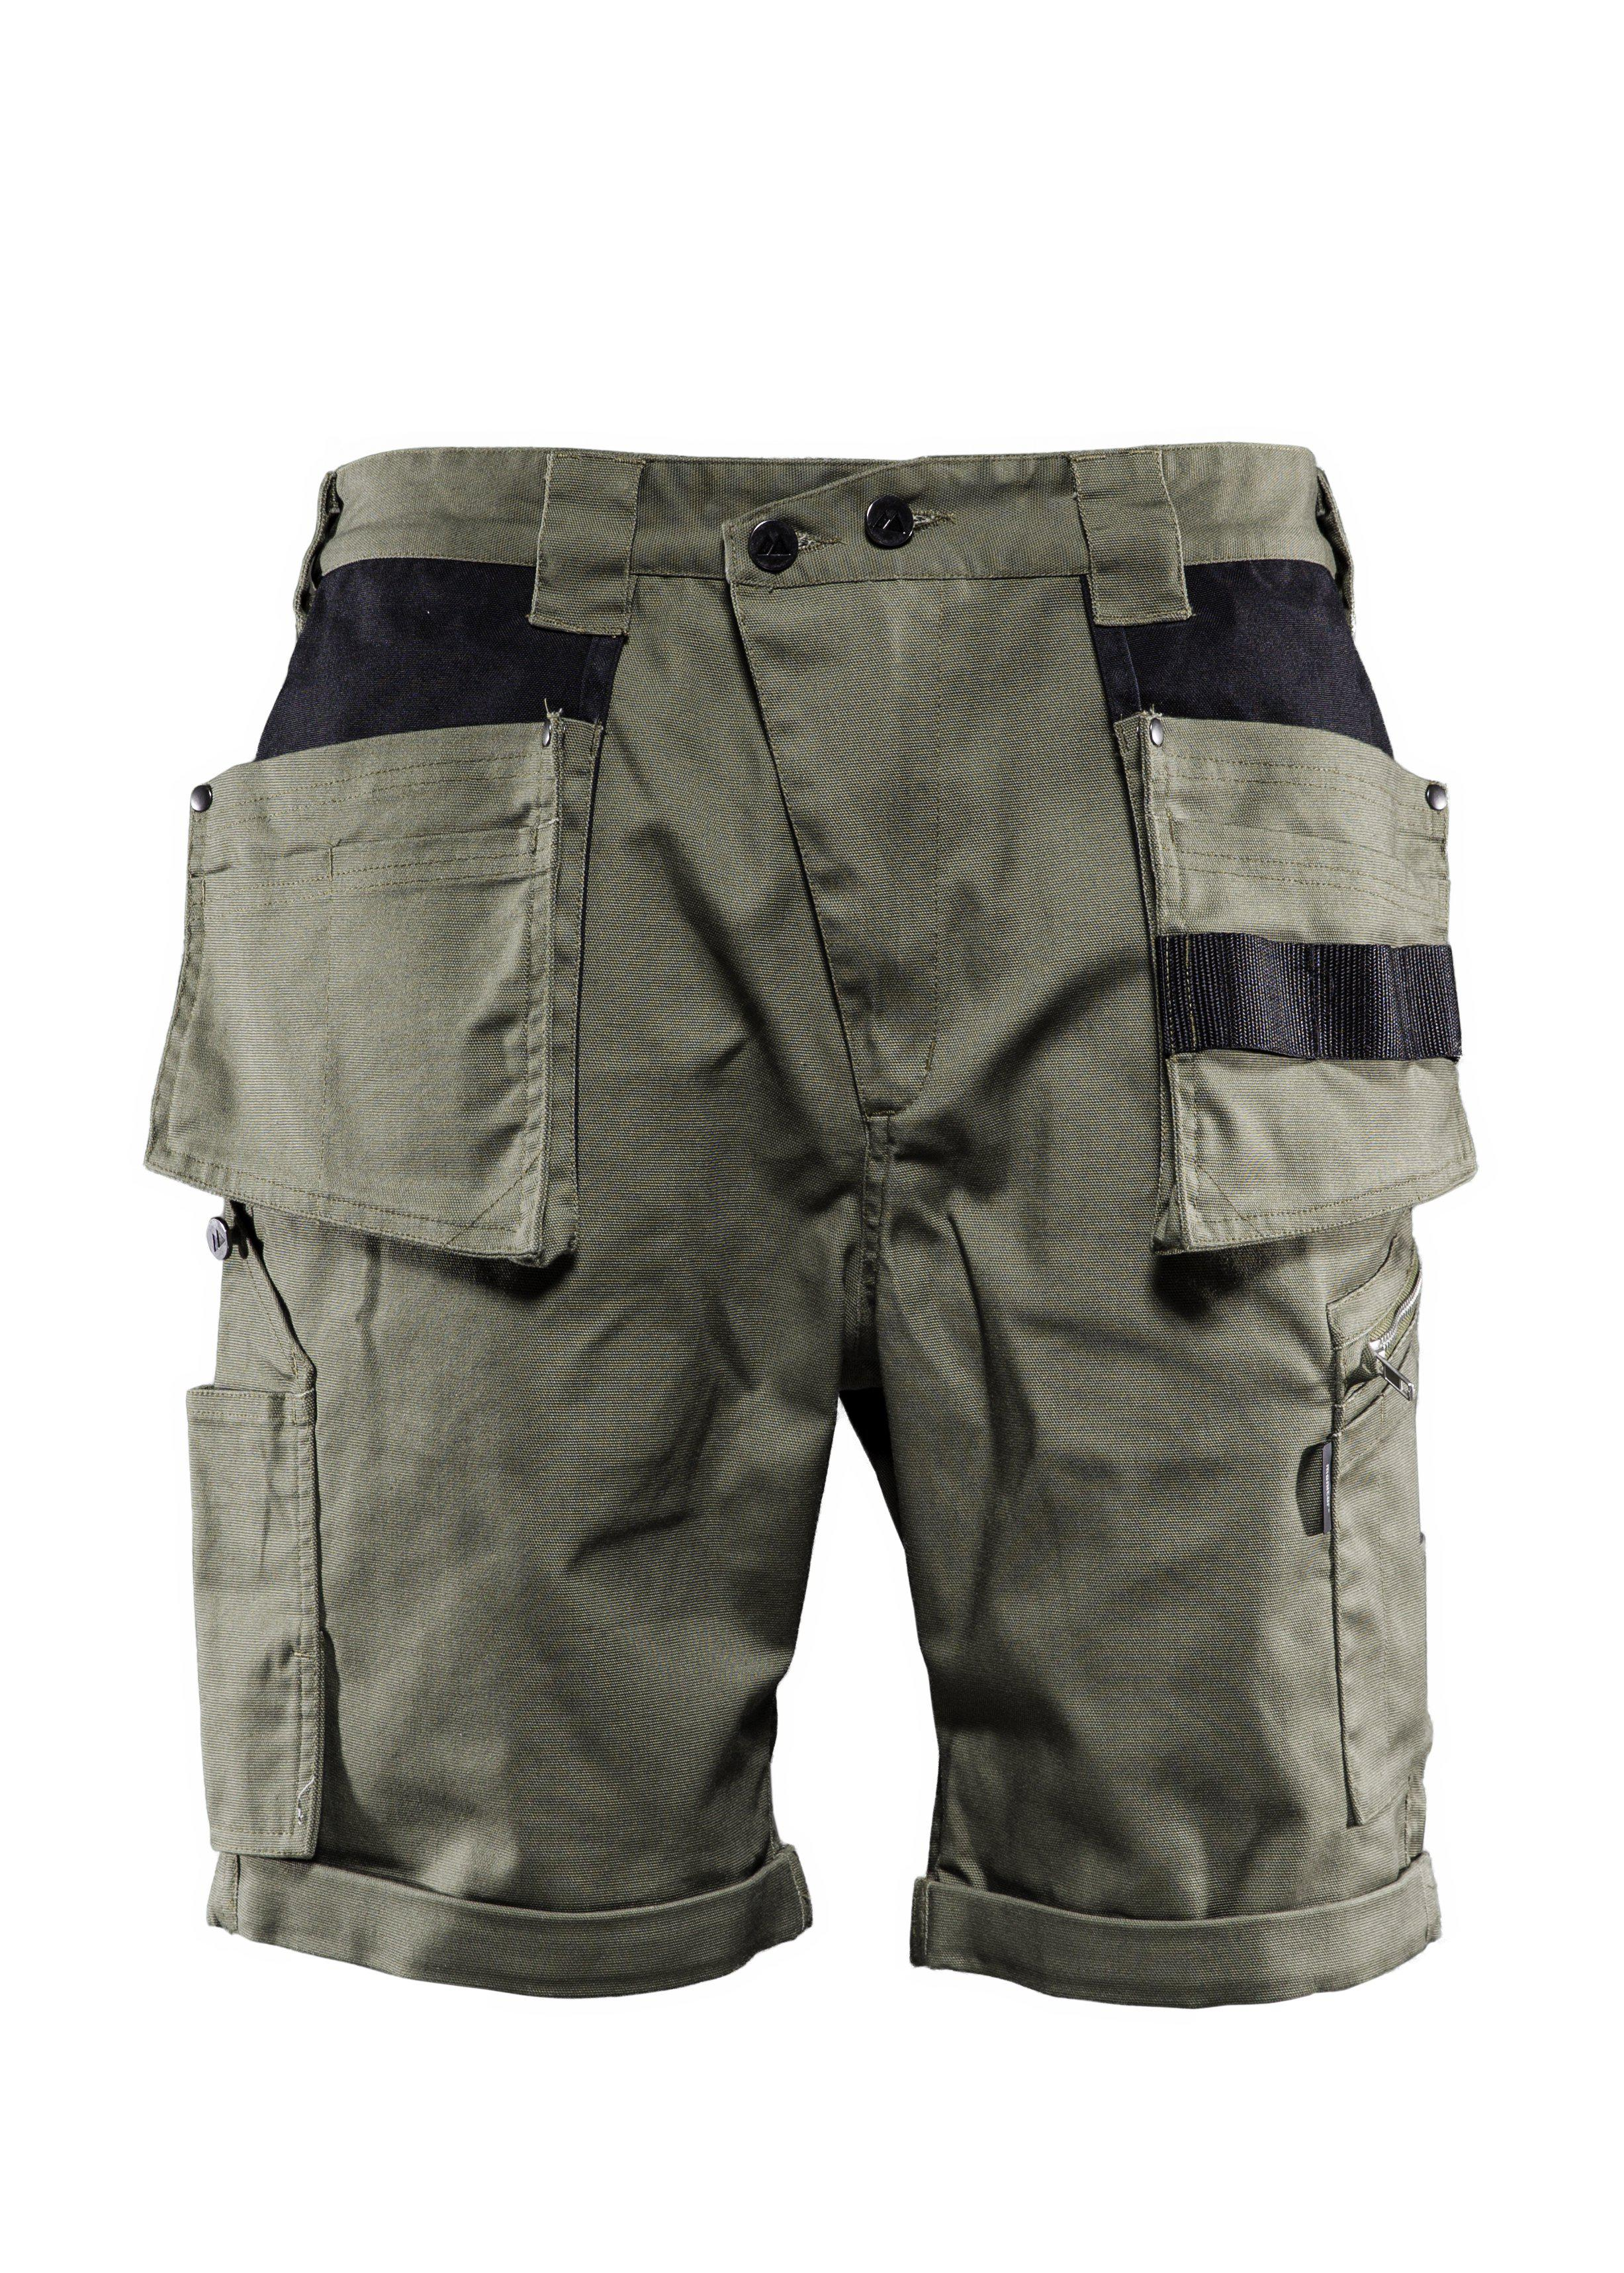 Versatile shorts, Carpenter shorts, Burnt olive green, L